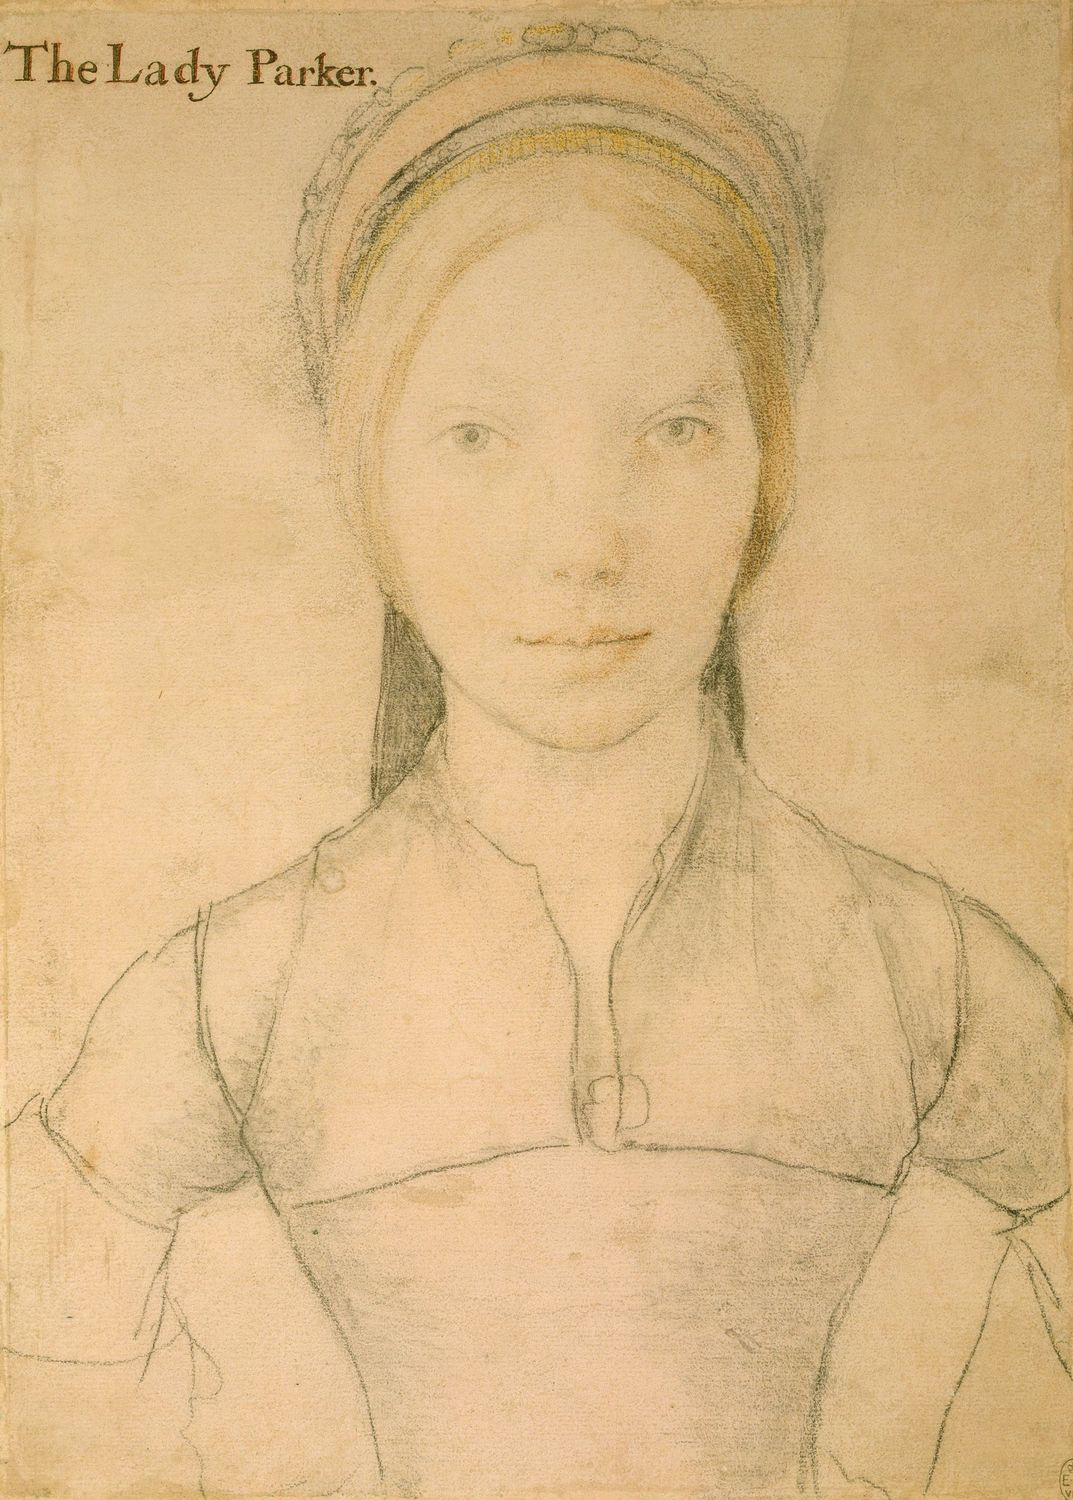 Portrait of Grace, Lady Parker. 1530s